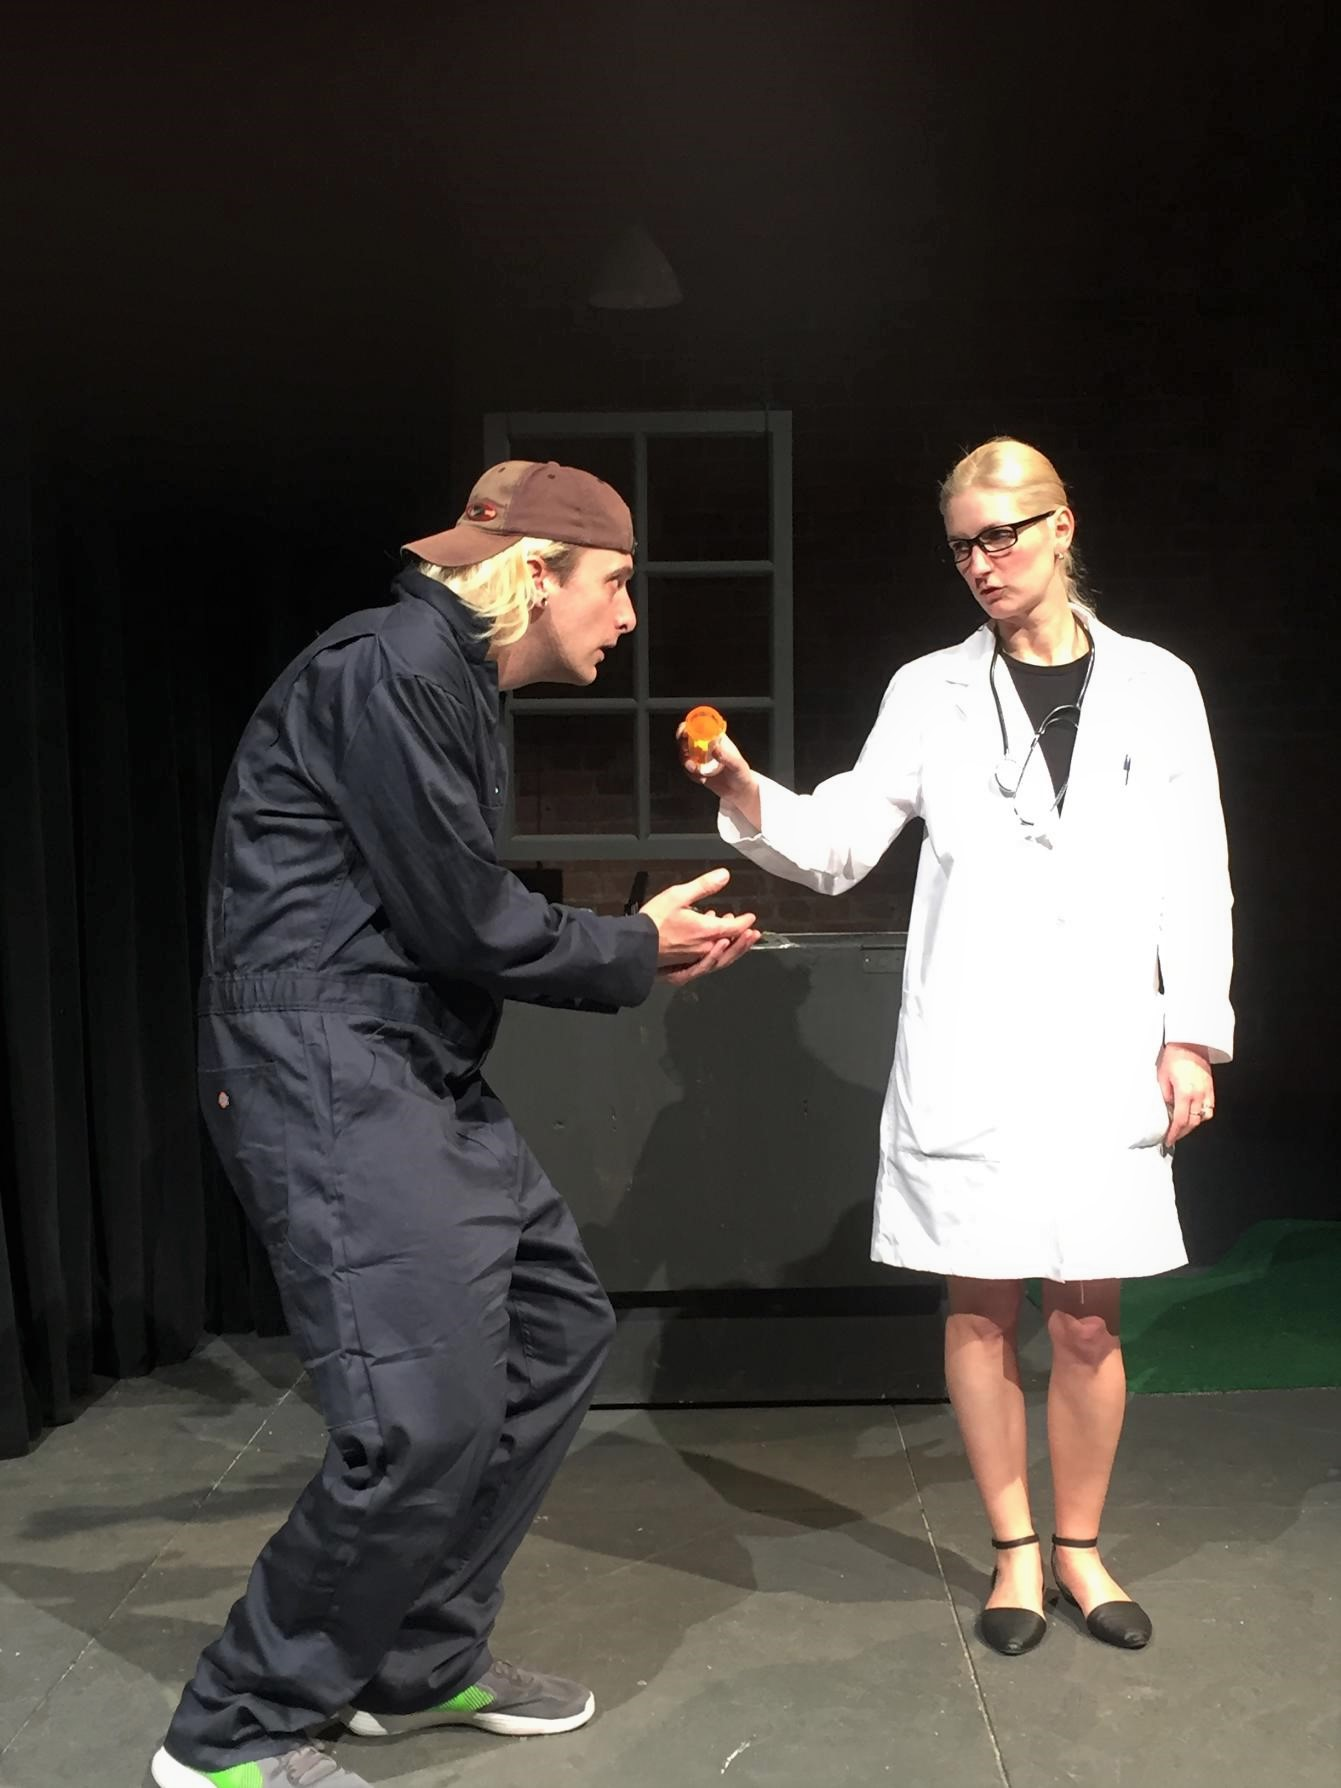 Mechanic (Trevor Williams), Doctor (Megan Chenot)